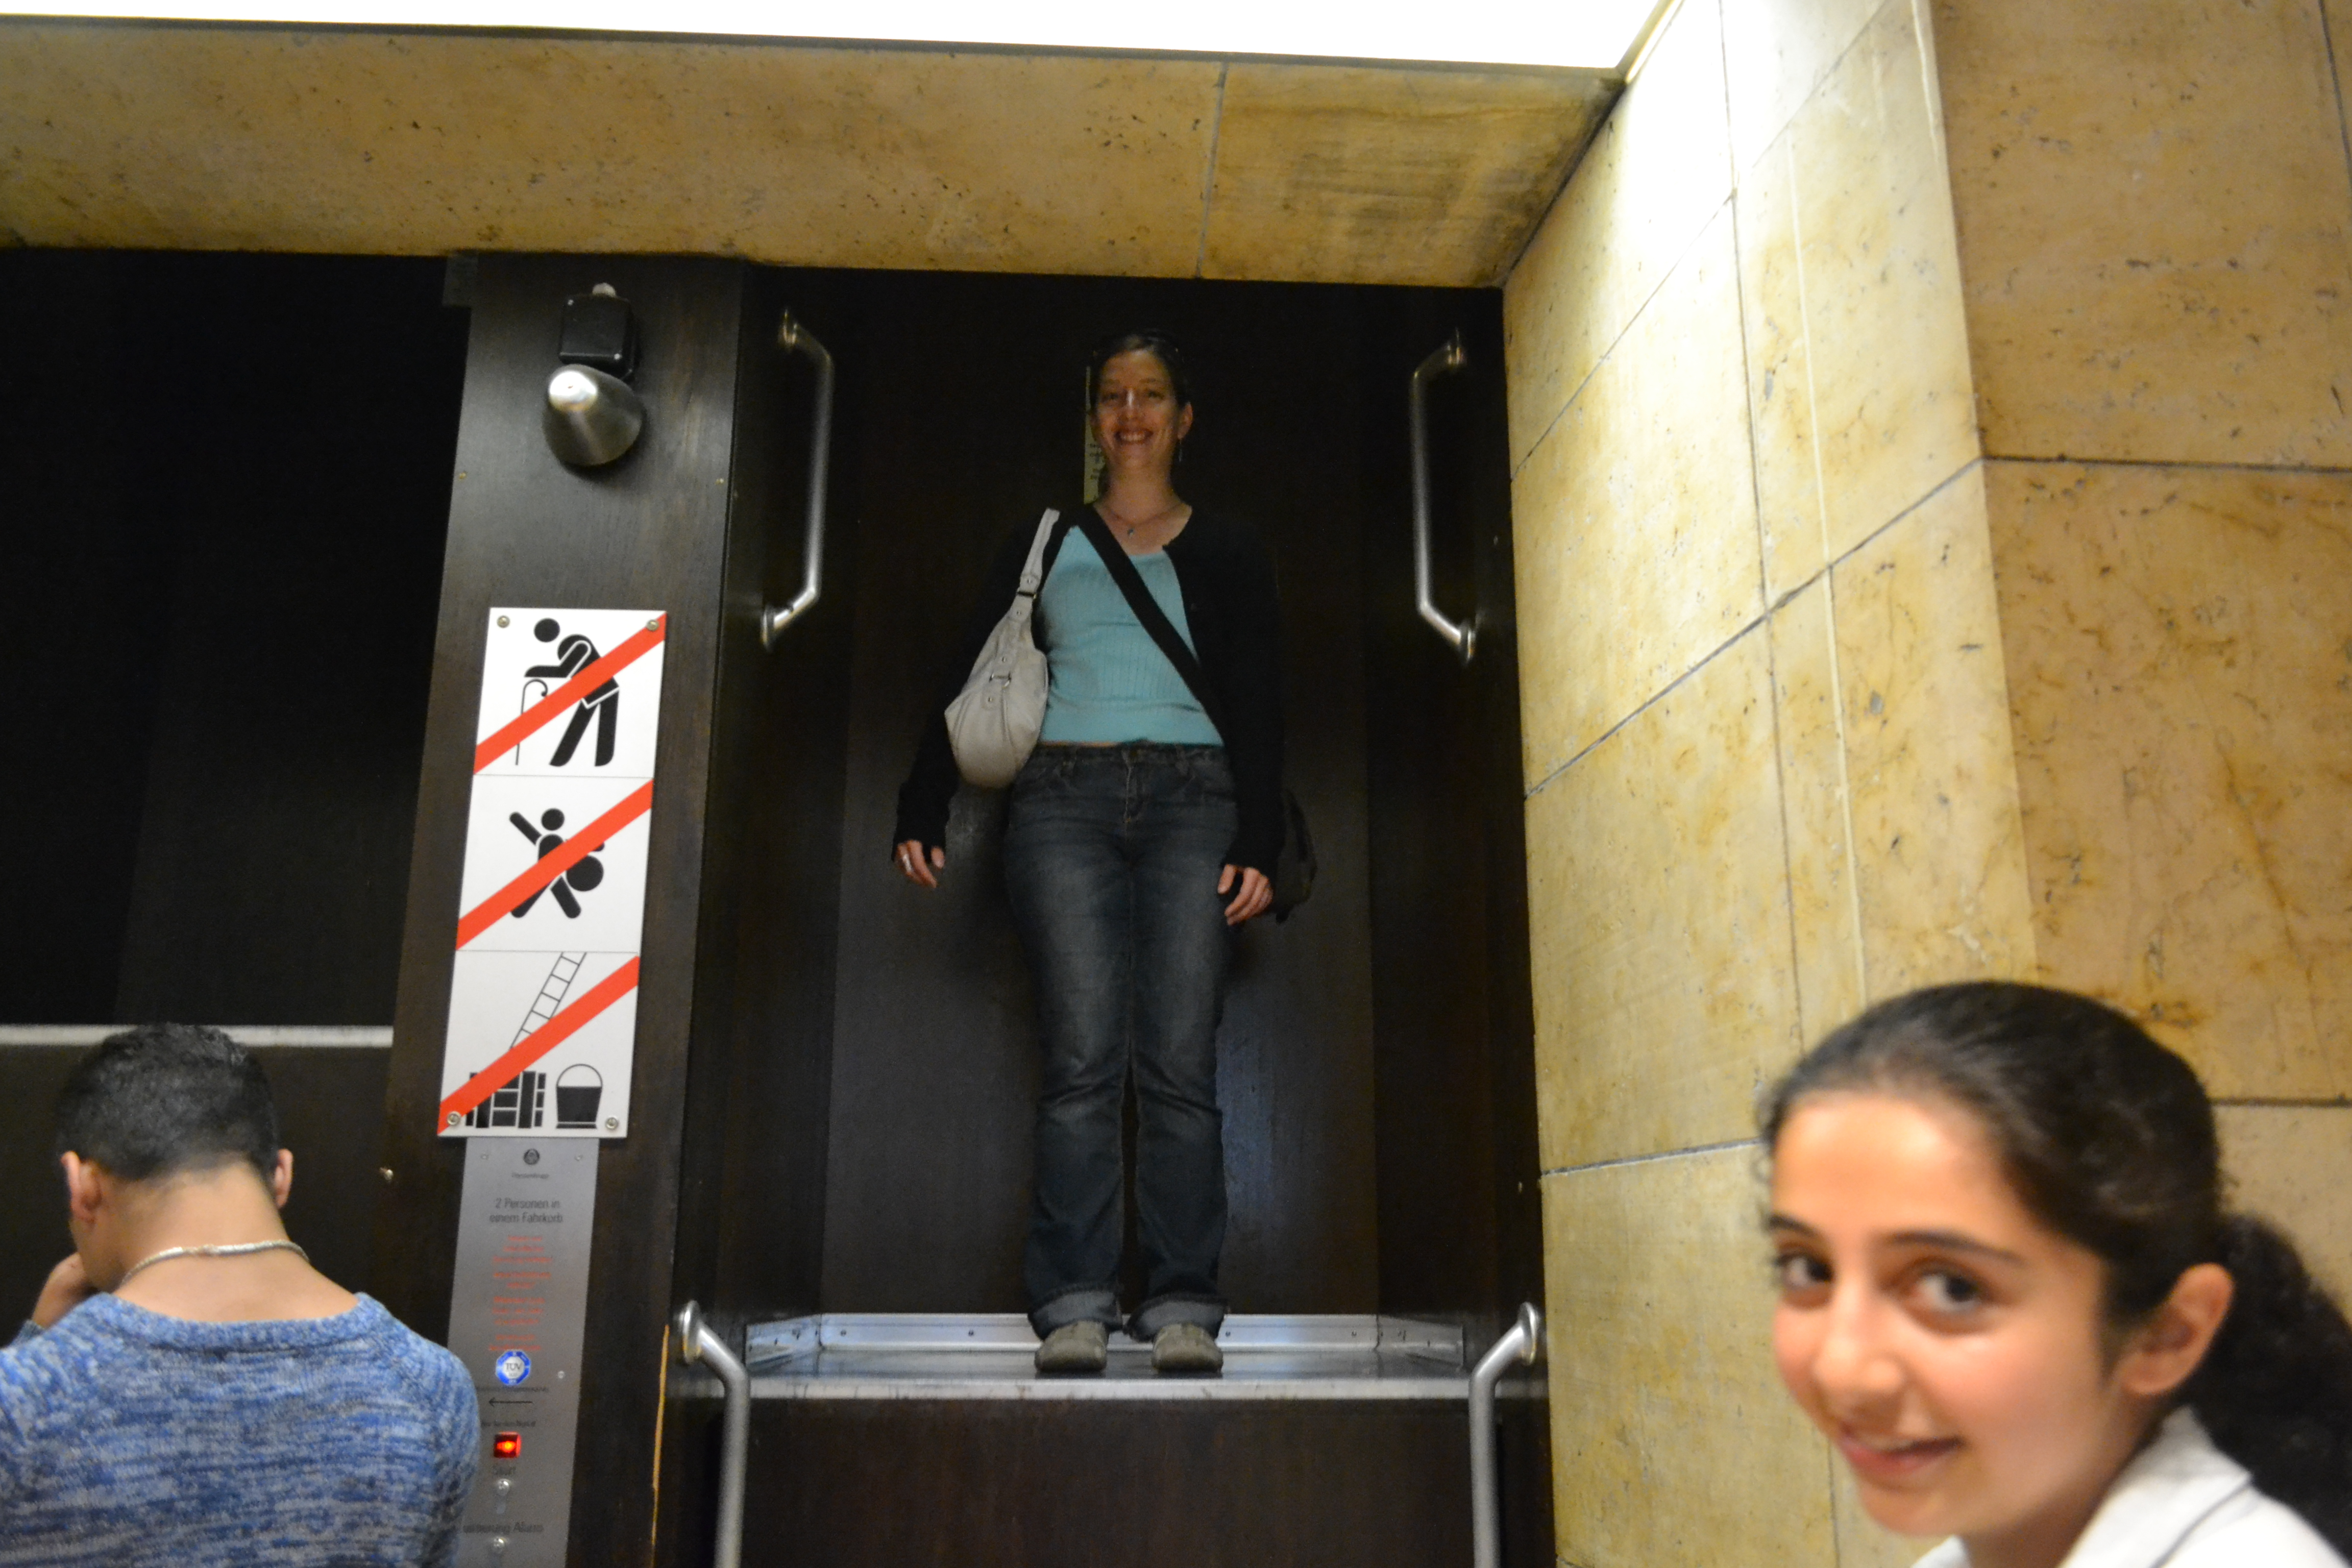 Here I am coming down from my ride on a continuously-moving elevator